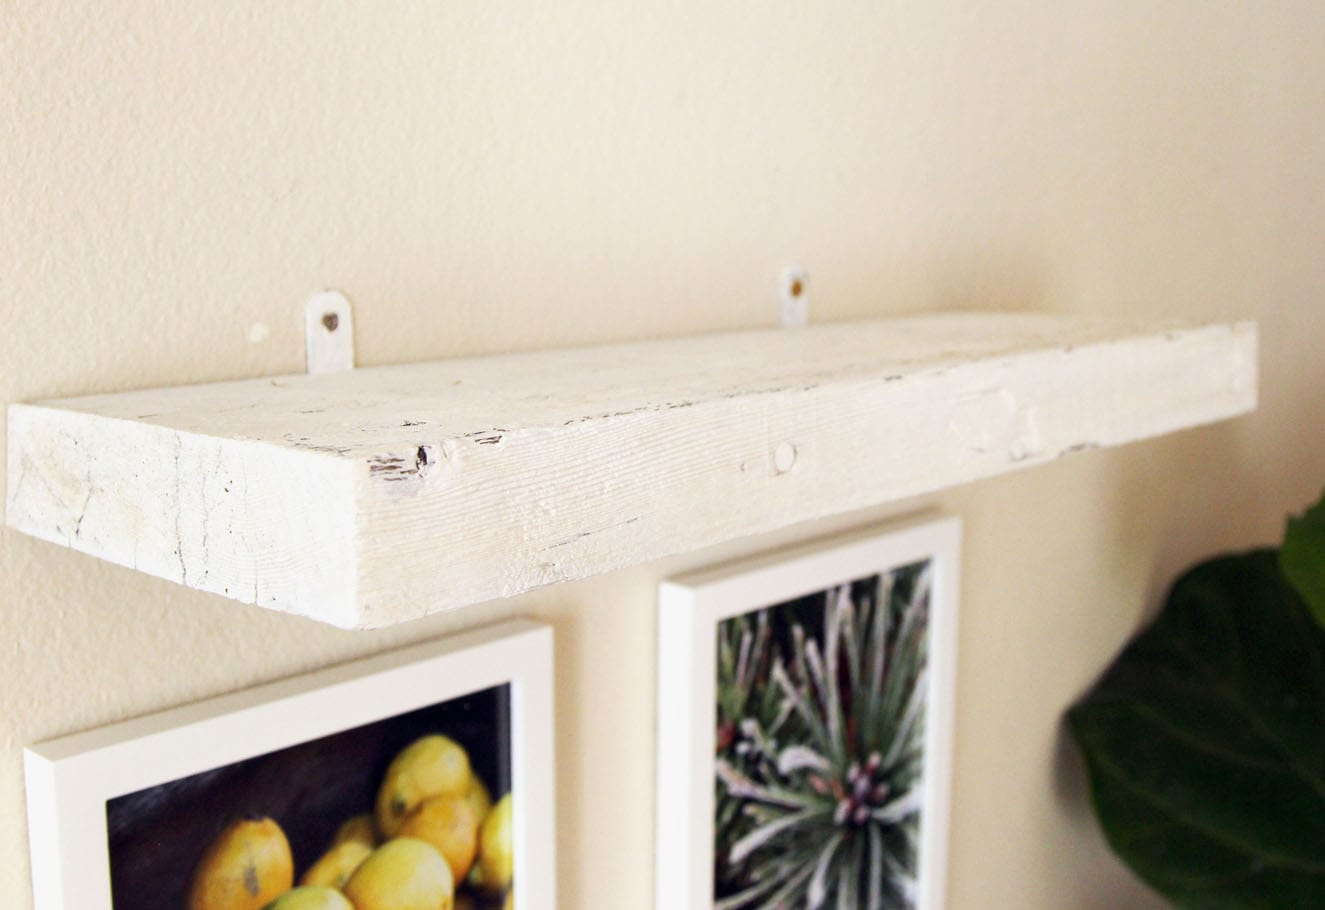 easy faux diy floating shelves minutes piece rainbow wall shelf apieceofrainbow make brackets screw the and onto because there are only tiny bits showing very each hide them with